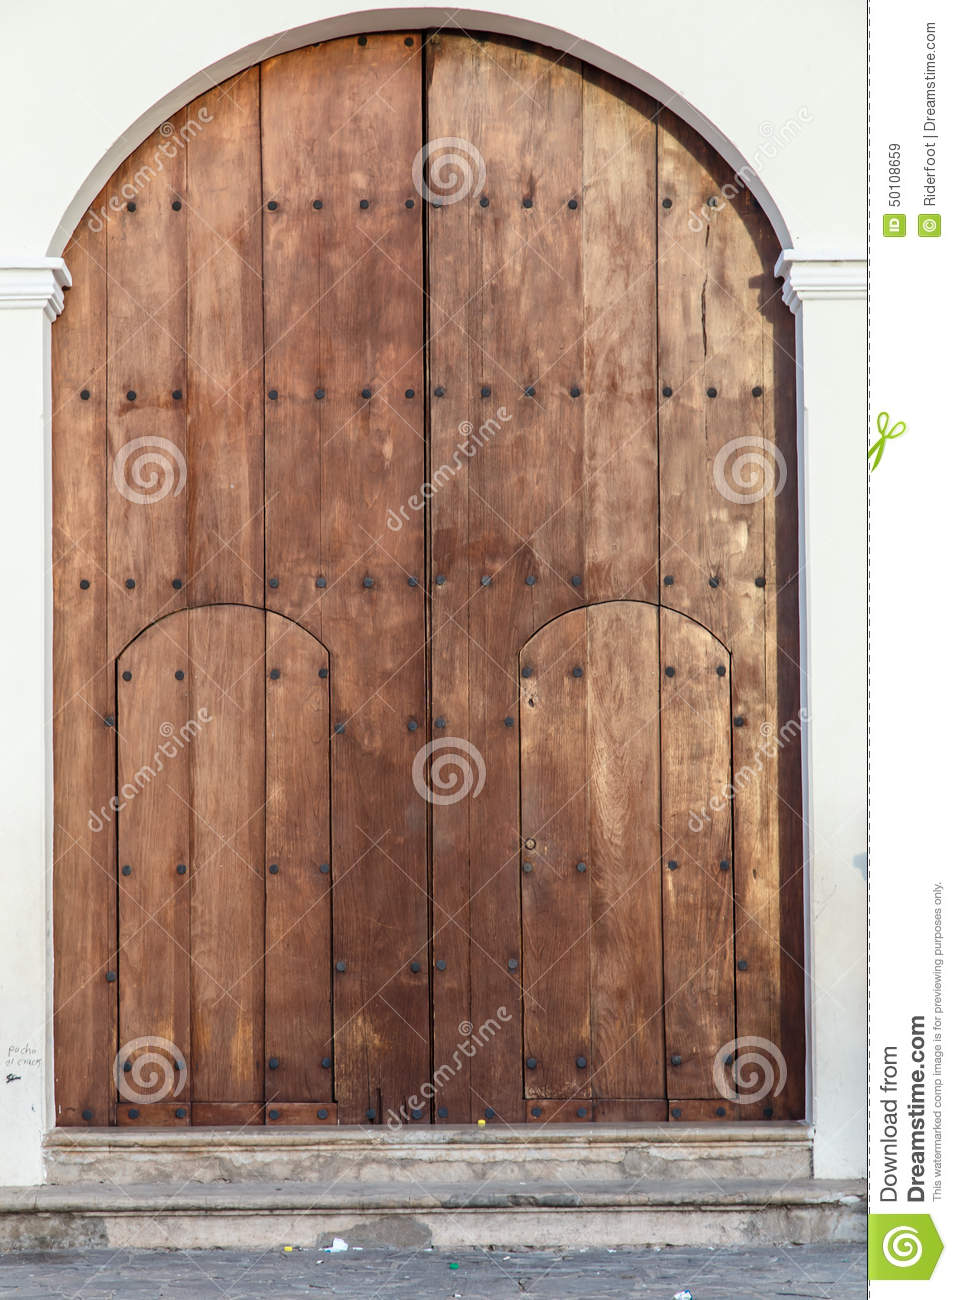 Antique Wood Door From A Church Stock Photo - Image: 50108659